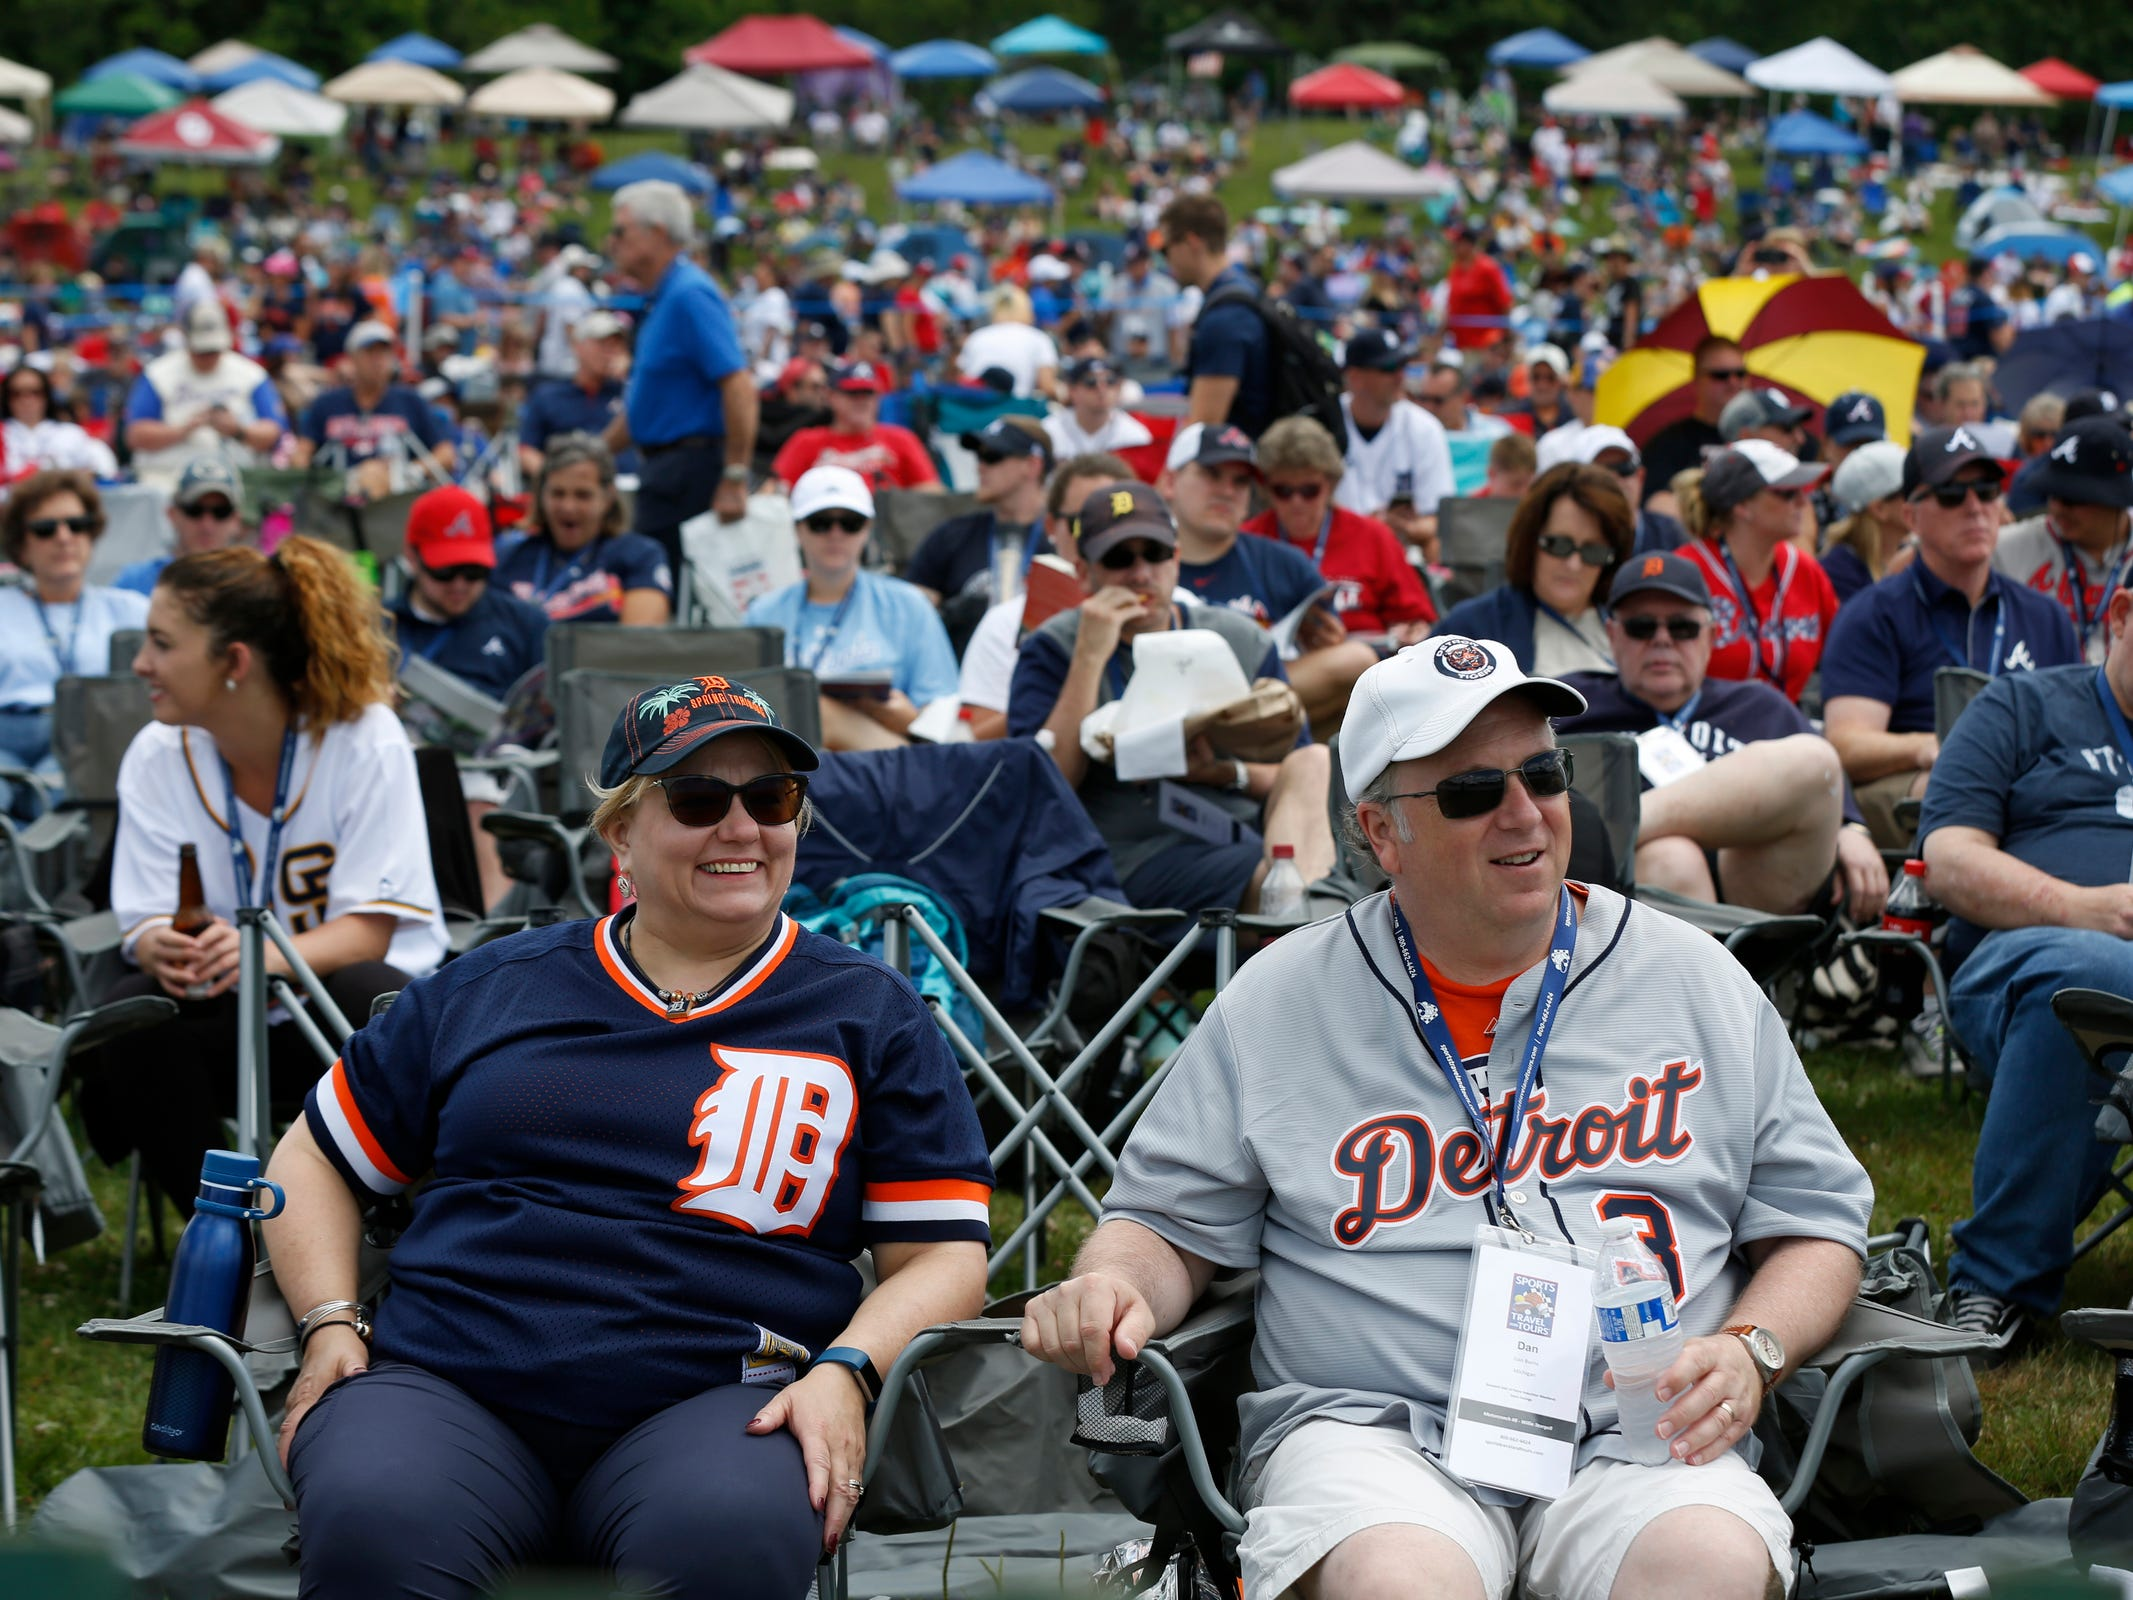 Detroit Tigers fans Julie and Dan Burns of Novi, watch on the large video screen an interview with former Detroit Tigers pitcher Jack Morris, before the induction ceremony at the Clark Sports Center after the National Baseball Hall of Fame induction ceremony in Cooperstown, N.Y. on Sunday, July 29, 2018.